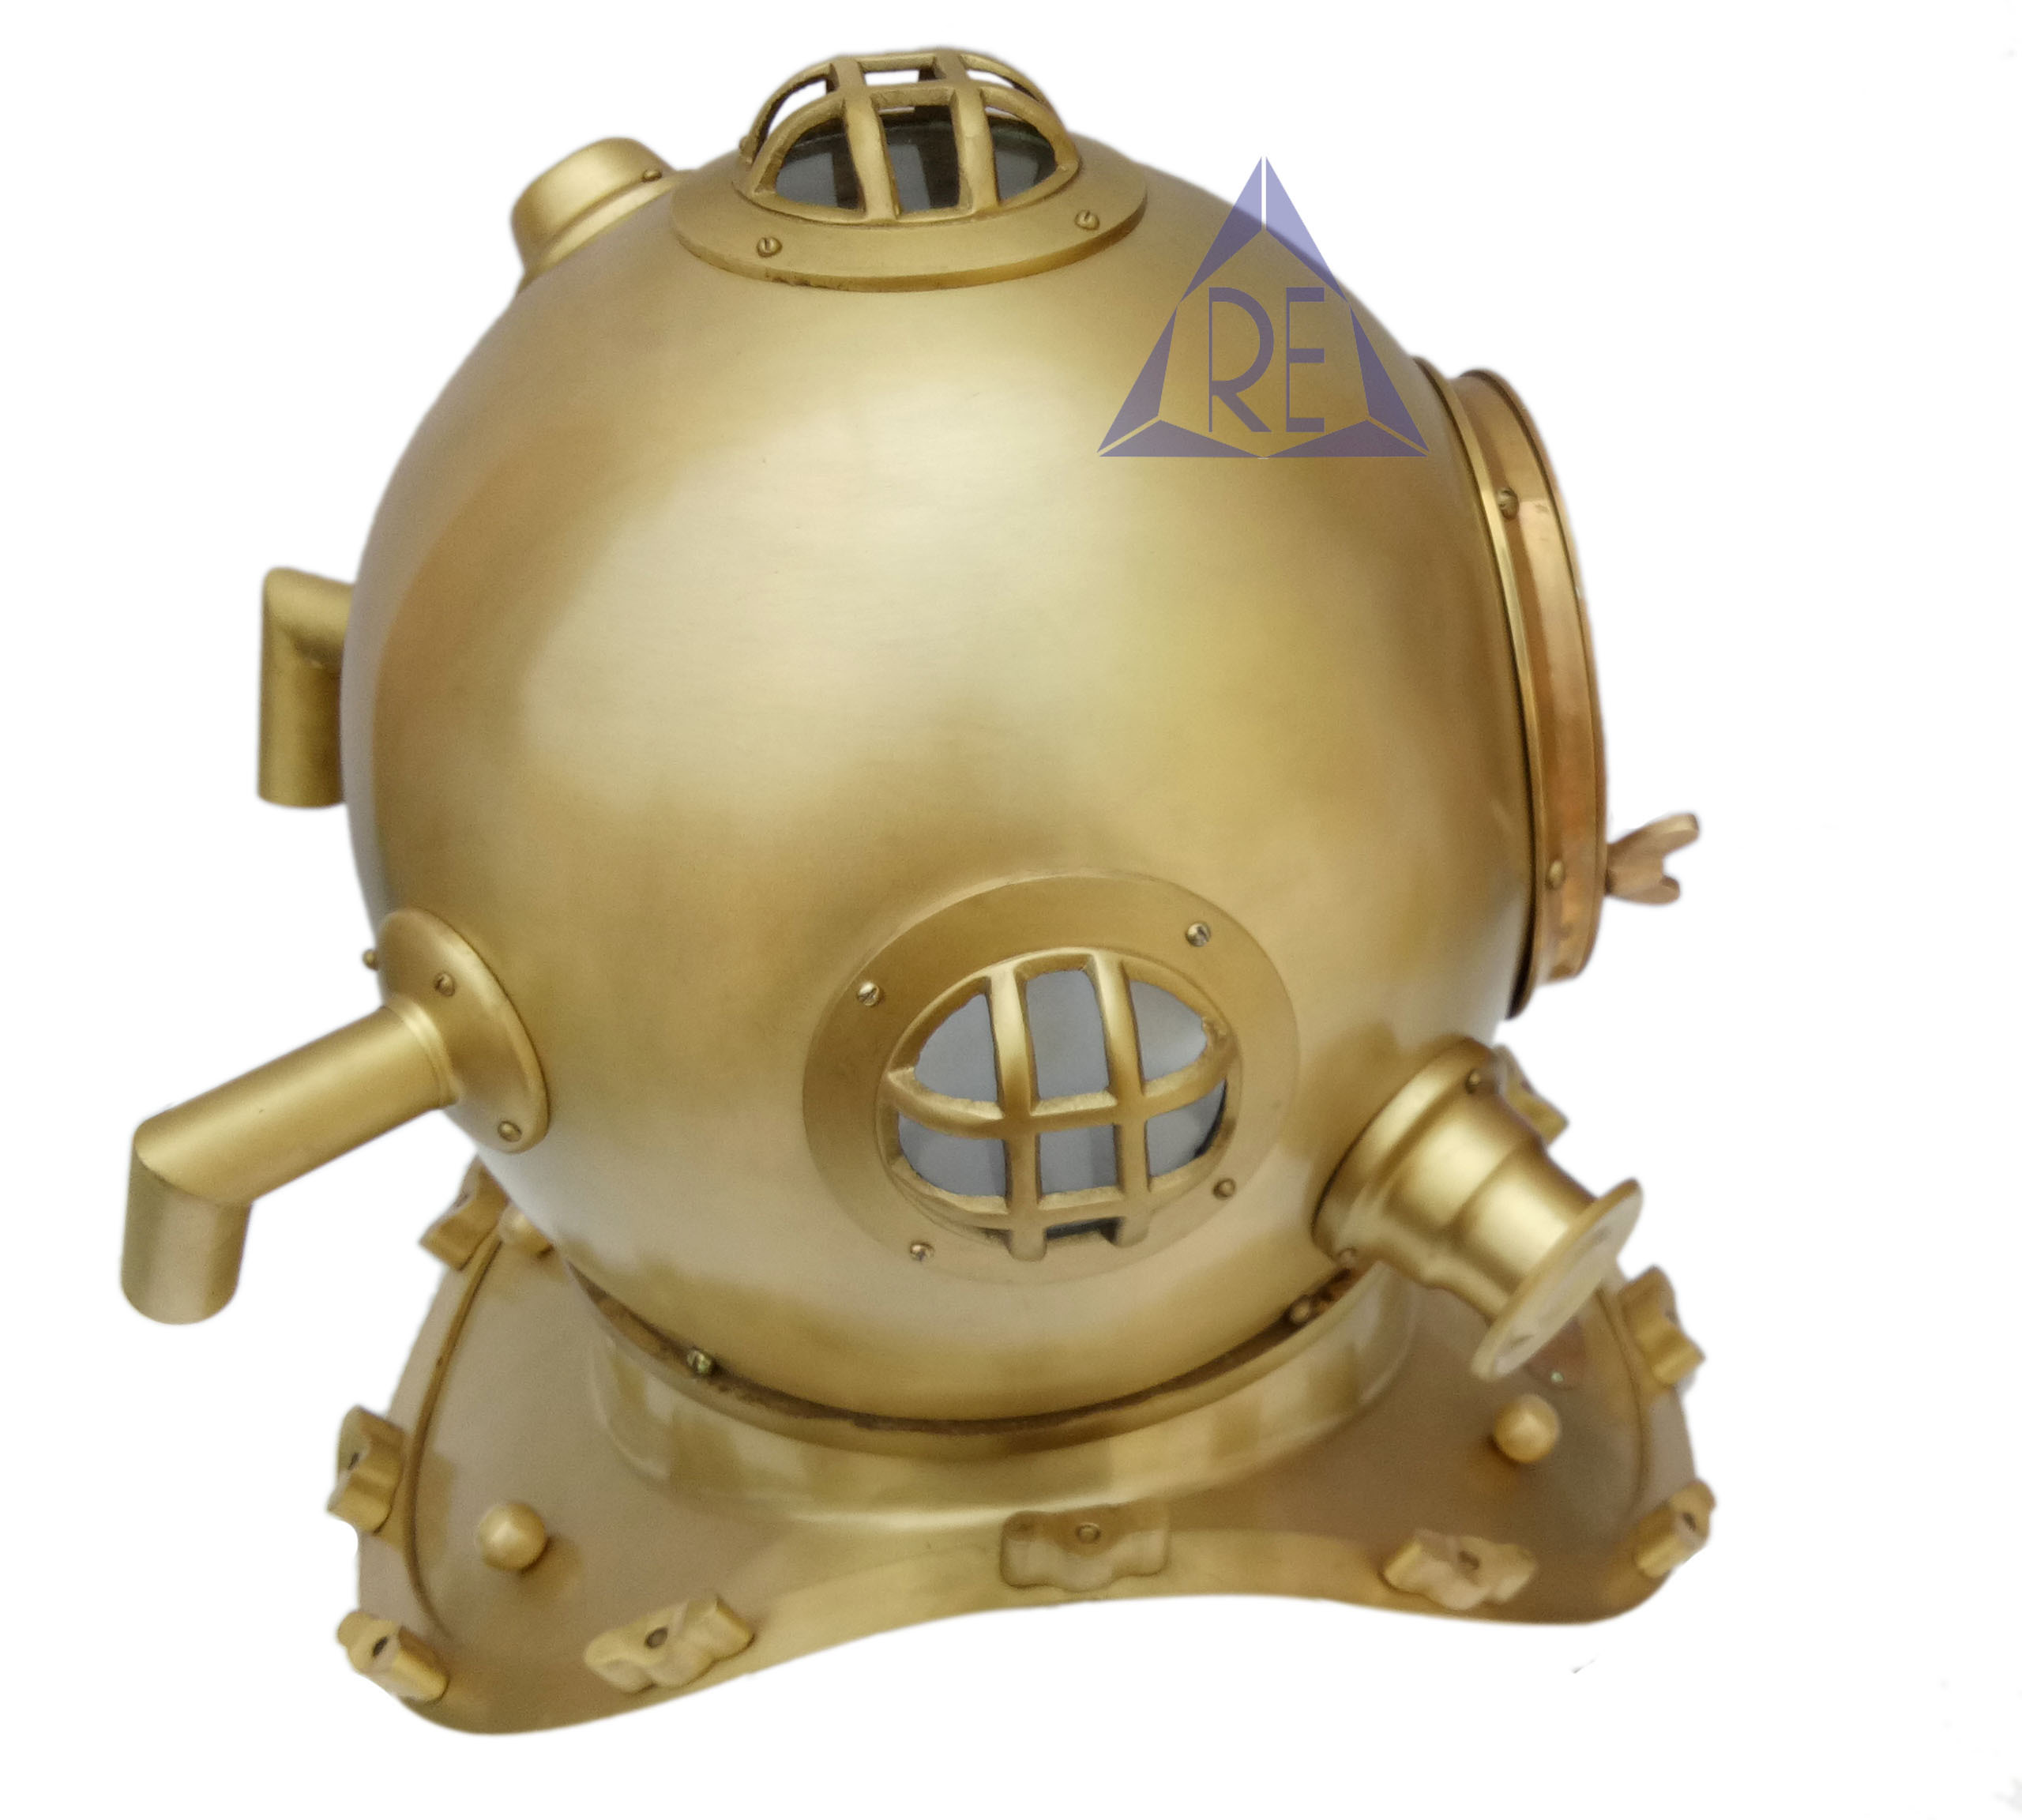 Anchor Engineering Home Decor Gifted Diving/Divers Helmet